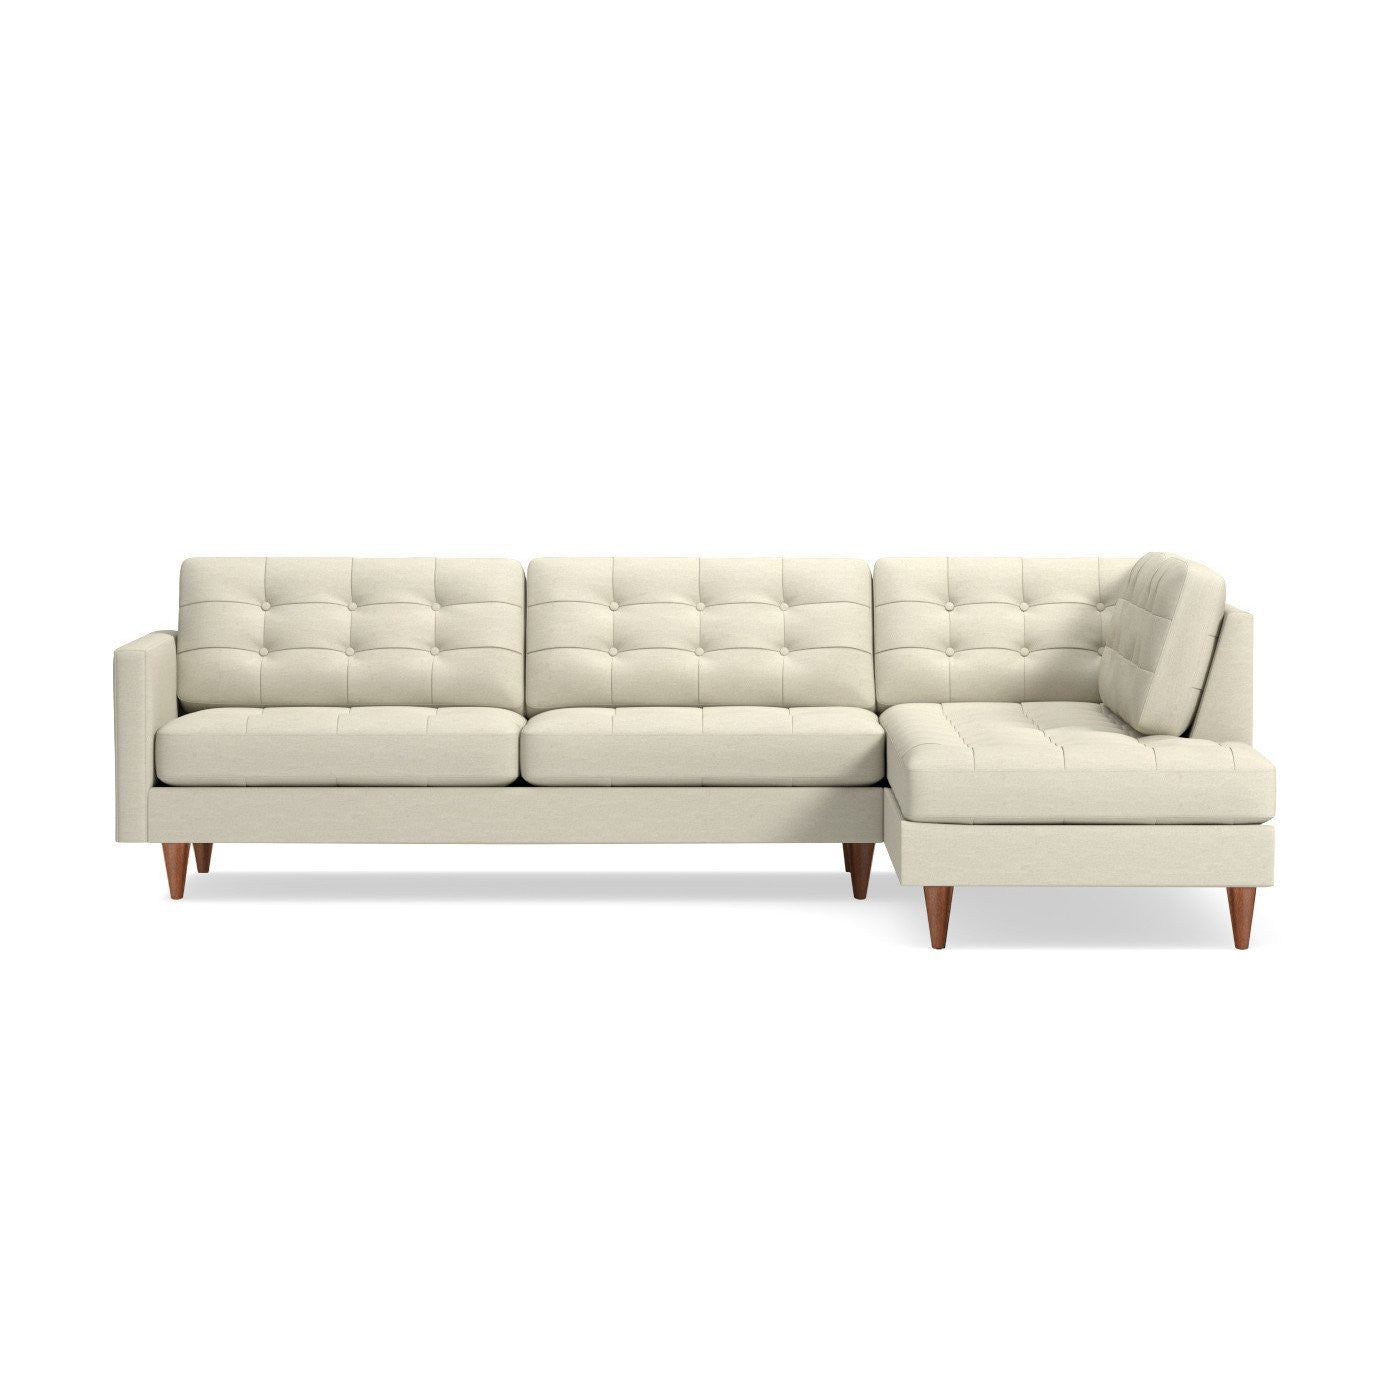 Lexington 2pc Sectional Sofa  sc 1 st  Apt2B : cream sectional couch - Sectionals, Sofas & Couches